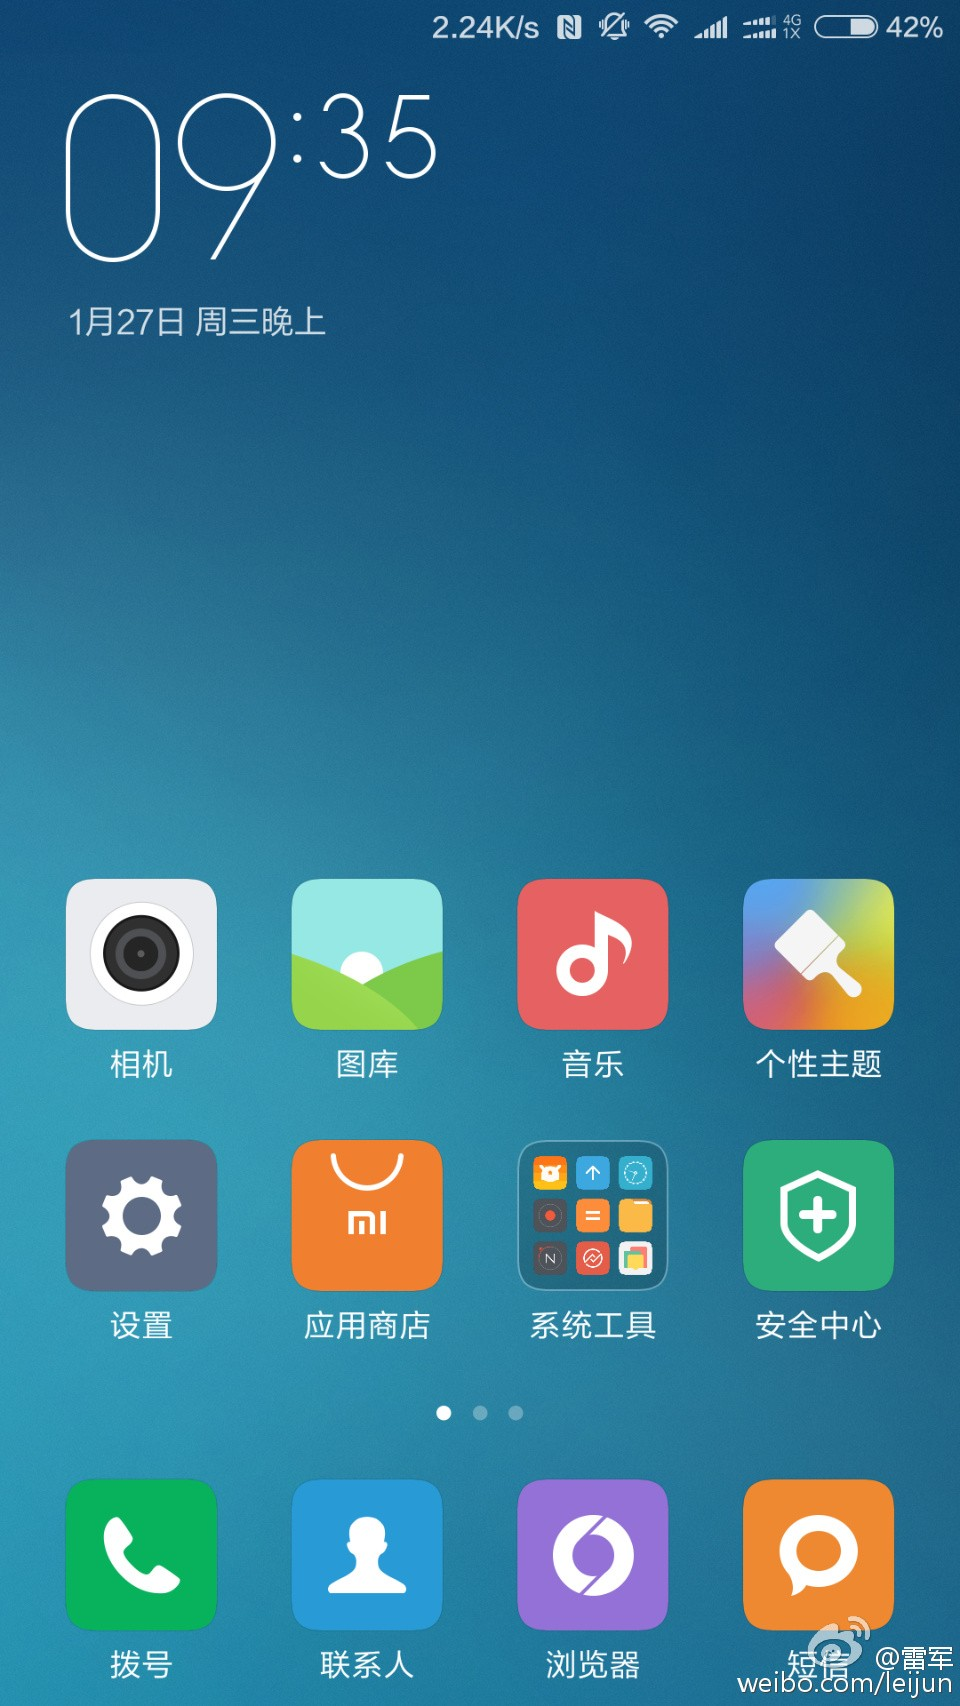 Xiaomi Co-founder teases Mi 5 screenshot, hints at dual sim